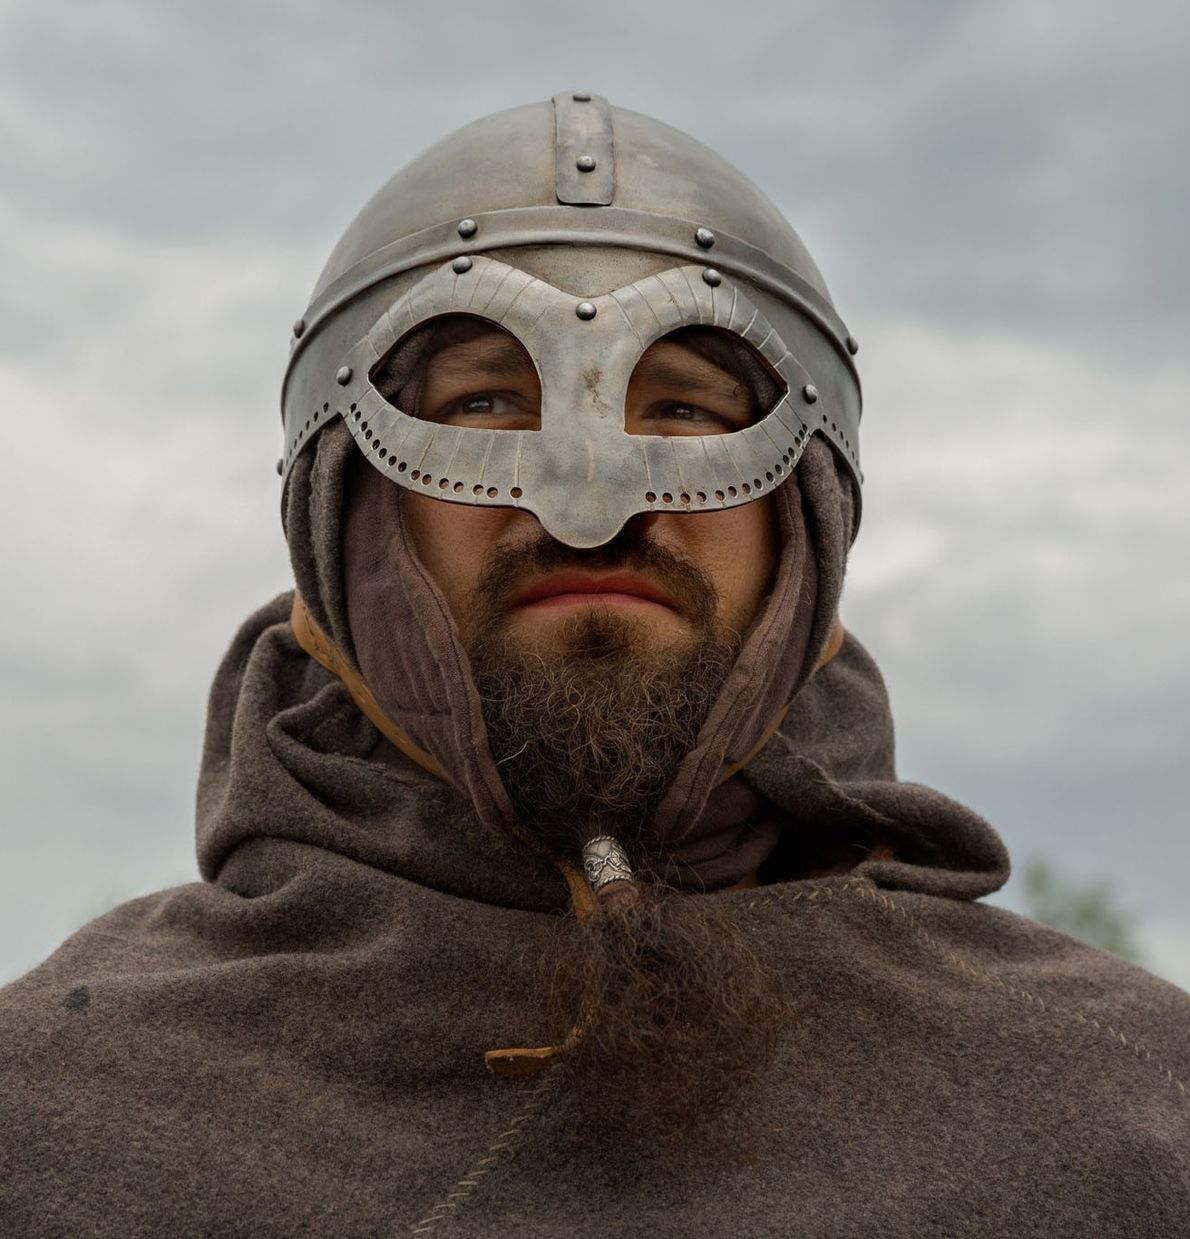 Concealed in iron helmets, chain mail, and leather cuirasses, Viking re-enactors make a formidable impression, revealing ...